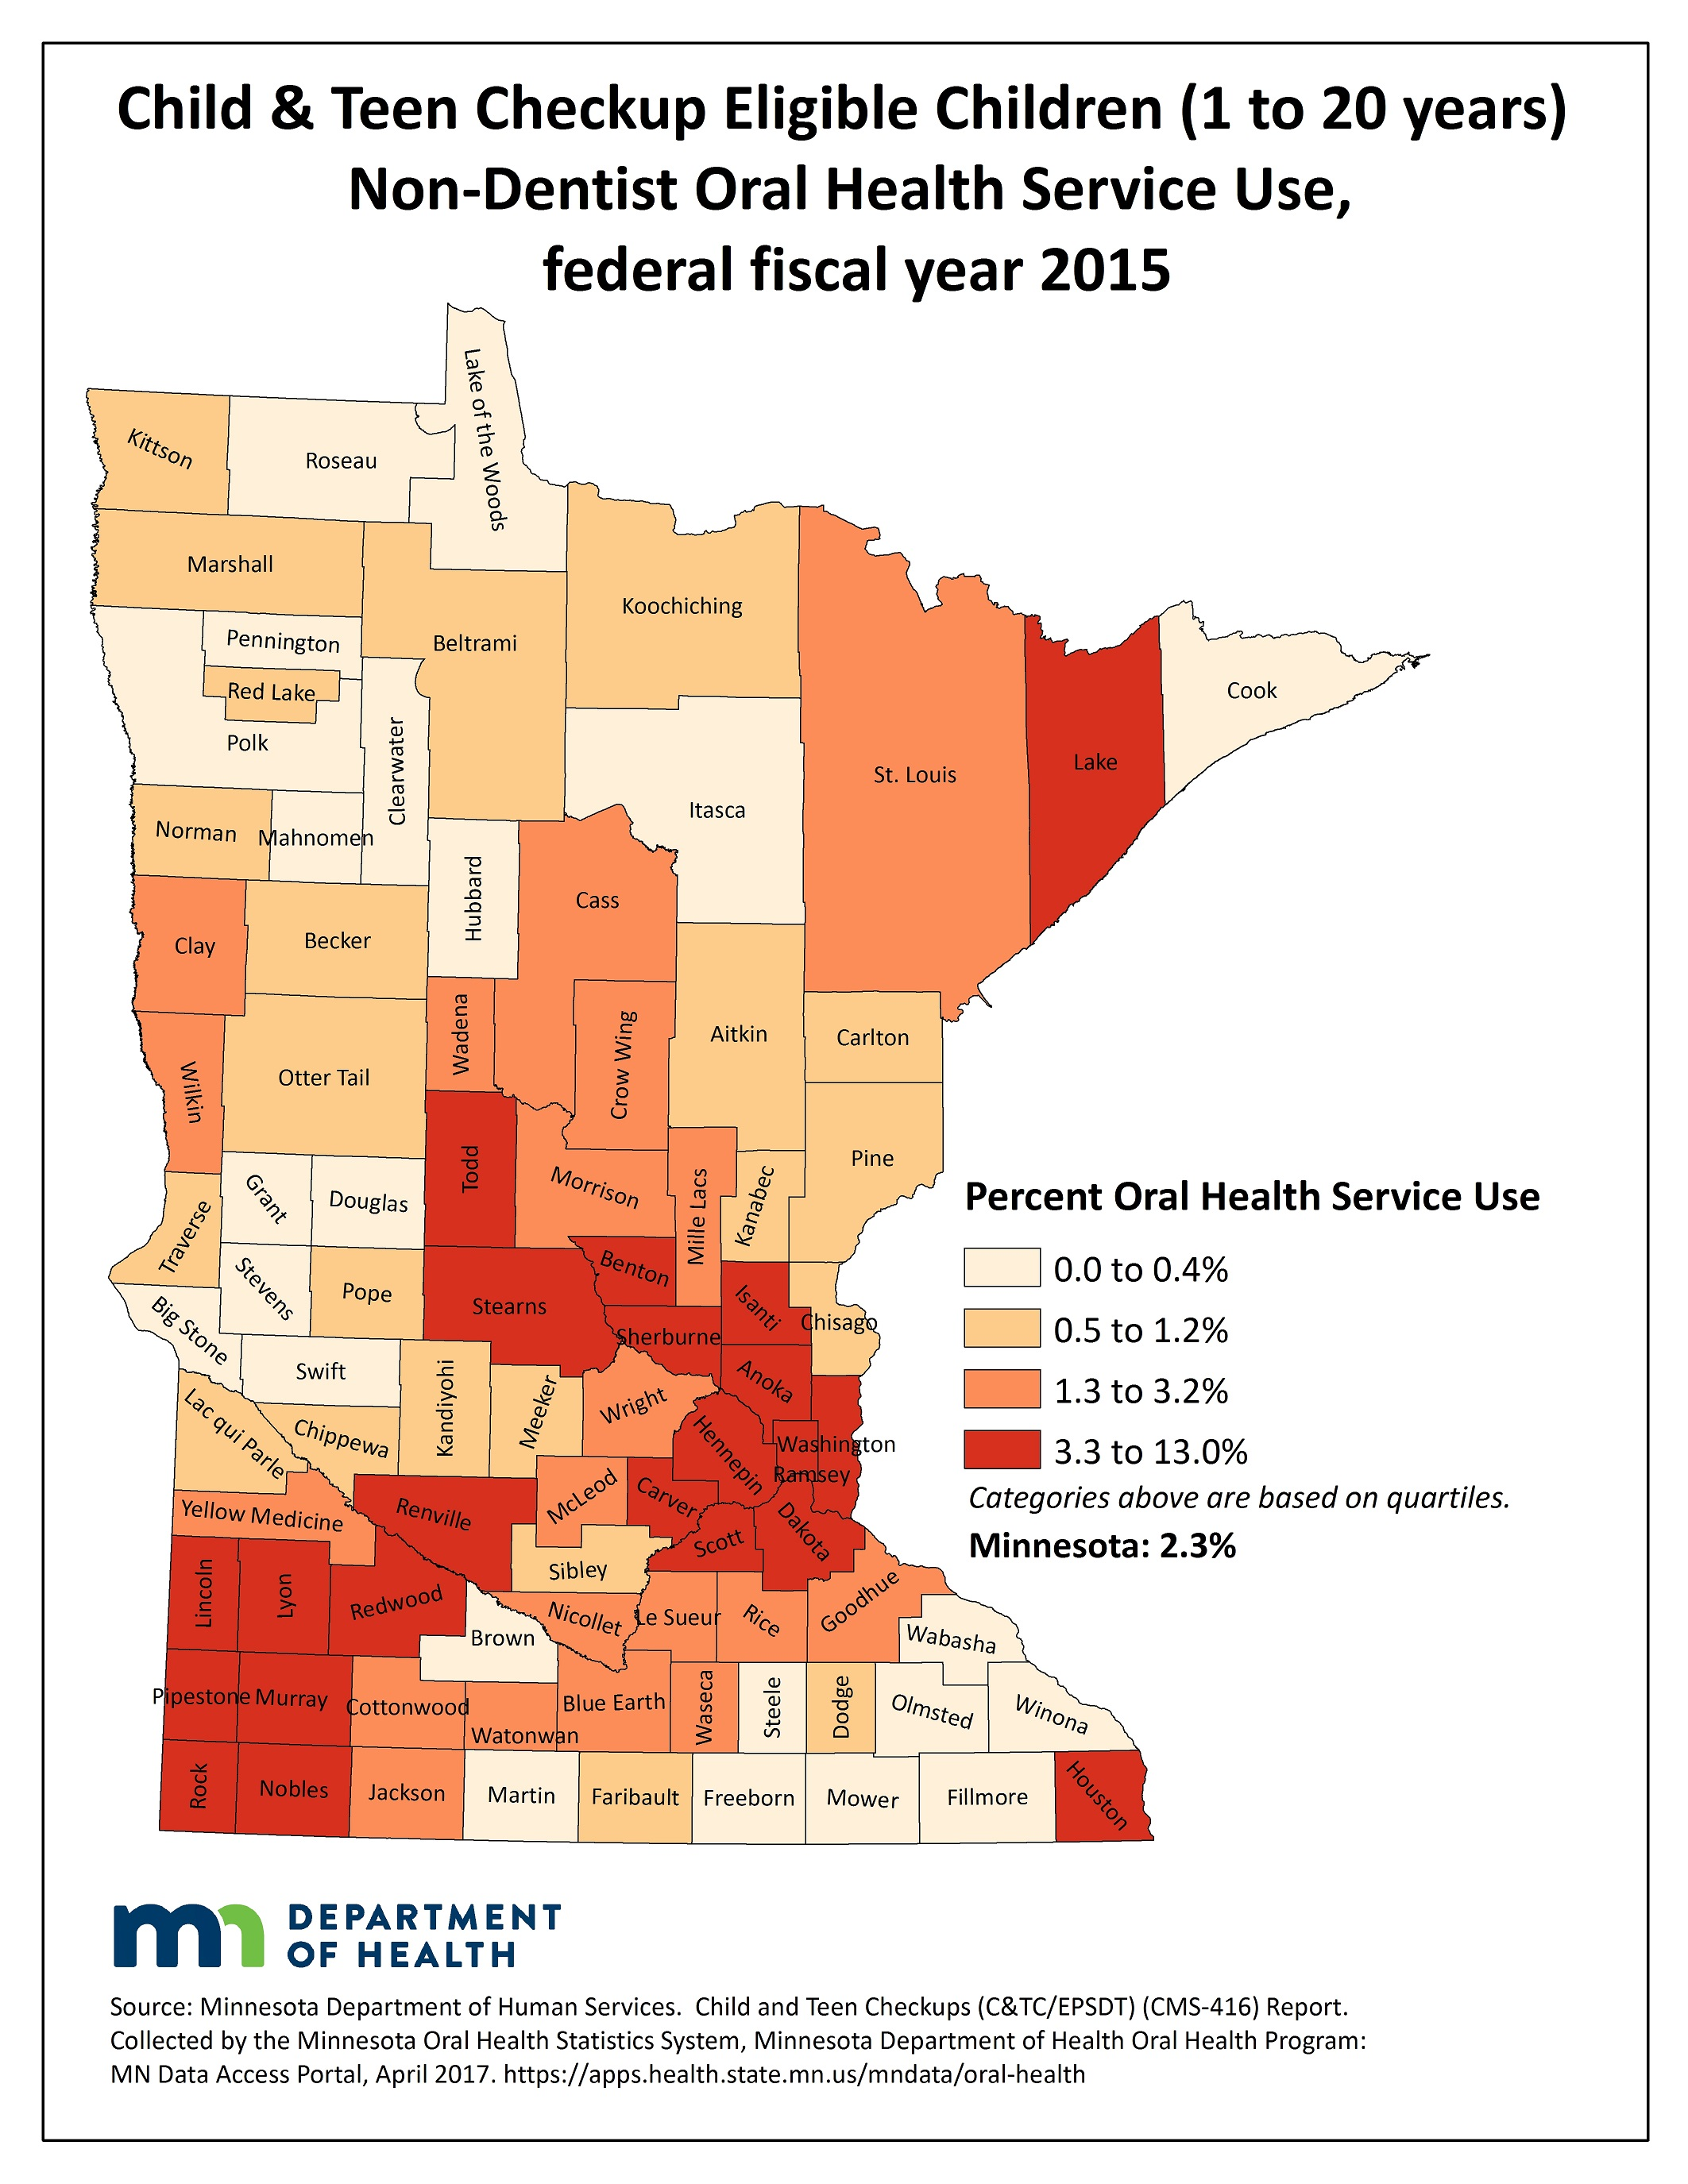 Non-Dentist Services Use Medicaid Children Mn Public Health Data Access - Mn Dept Of -6062